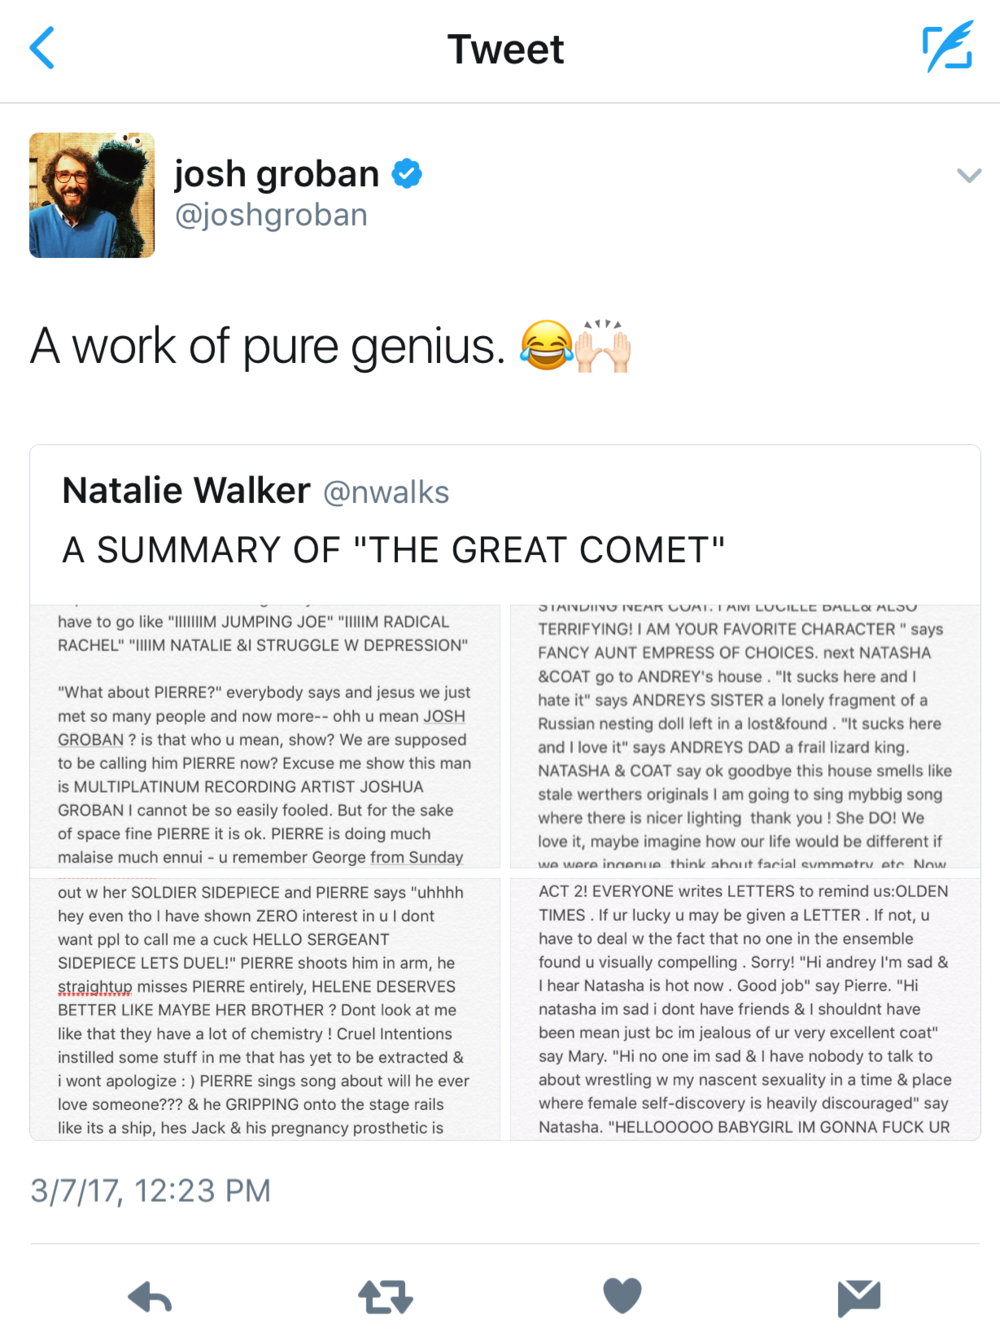 ^^^^JOSH GROBAN FUCKING  GETS IT  OK